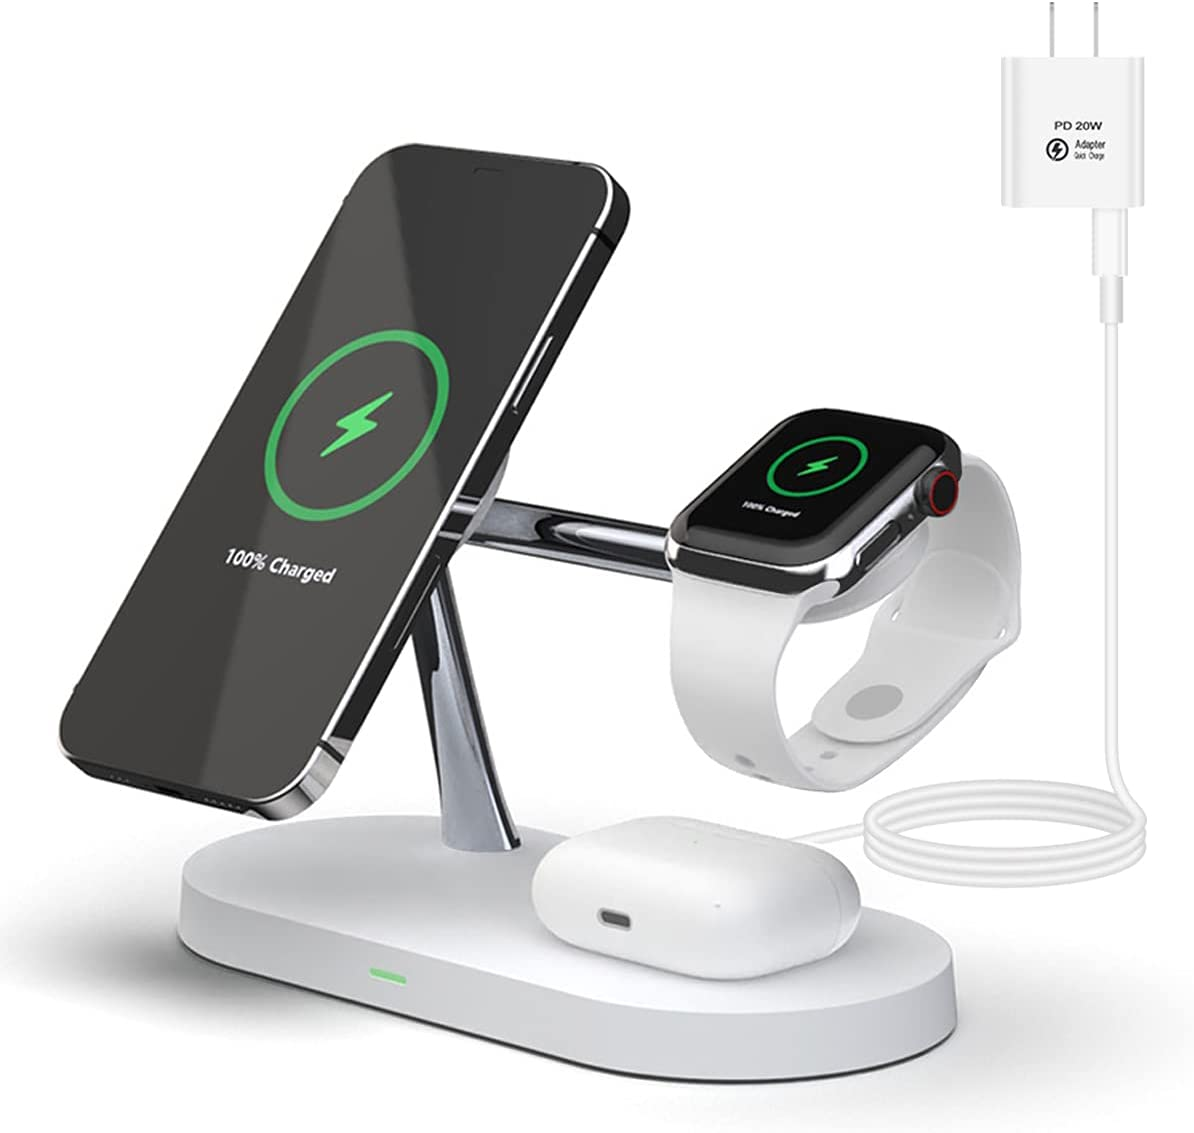 PONKET 4 in 1 Magnetic Wireless Charger Station Compatible with MagSafe, 20W PD Adapter Fast Wireless Charging Stand for iPhone 12/12 Pro Max/Mini/AirPods Pro/AirPods 1/2 iwatch Series -White